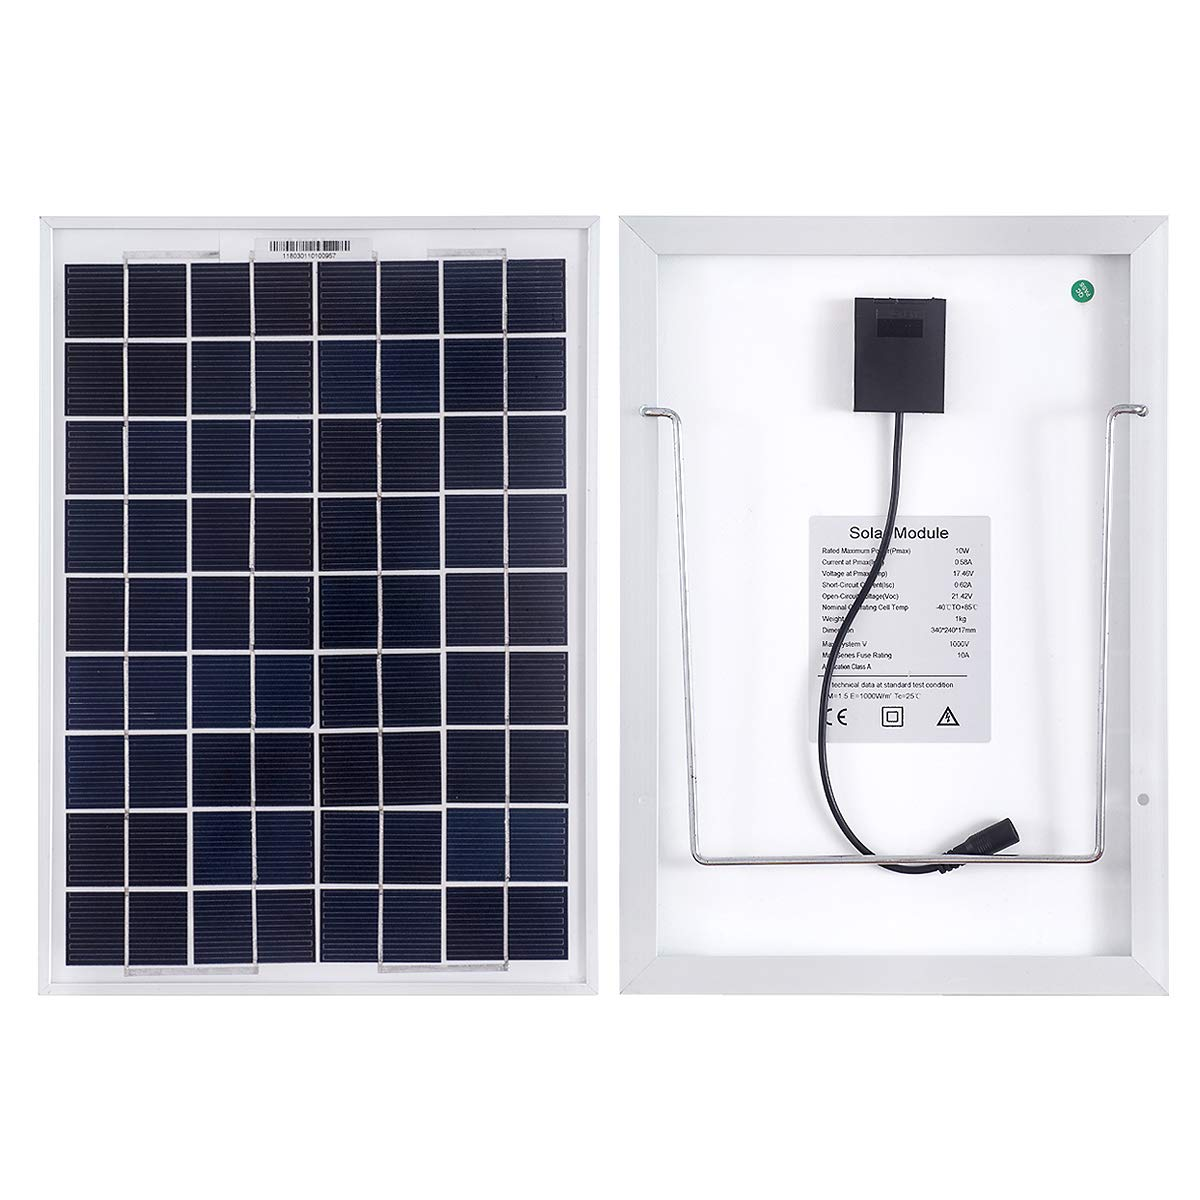 MEGSUN 10W 12V Mono Solar Panels for Cars, Caravans, Campers, Boats-with a 5m Crocodile Clip-Solar Panels with Supports